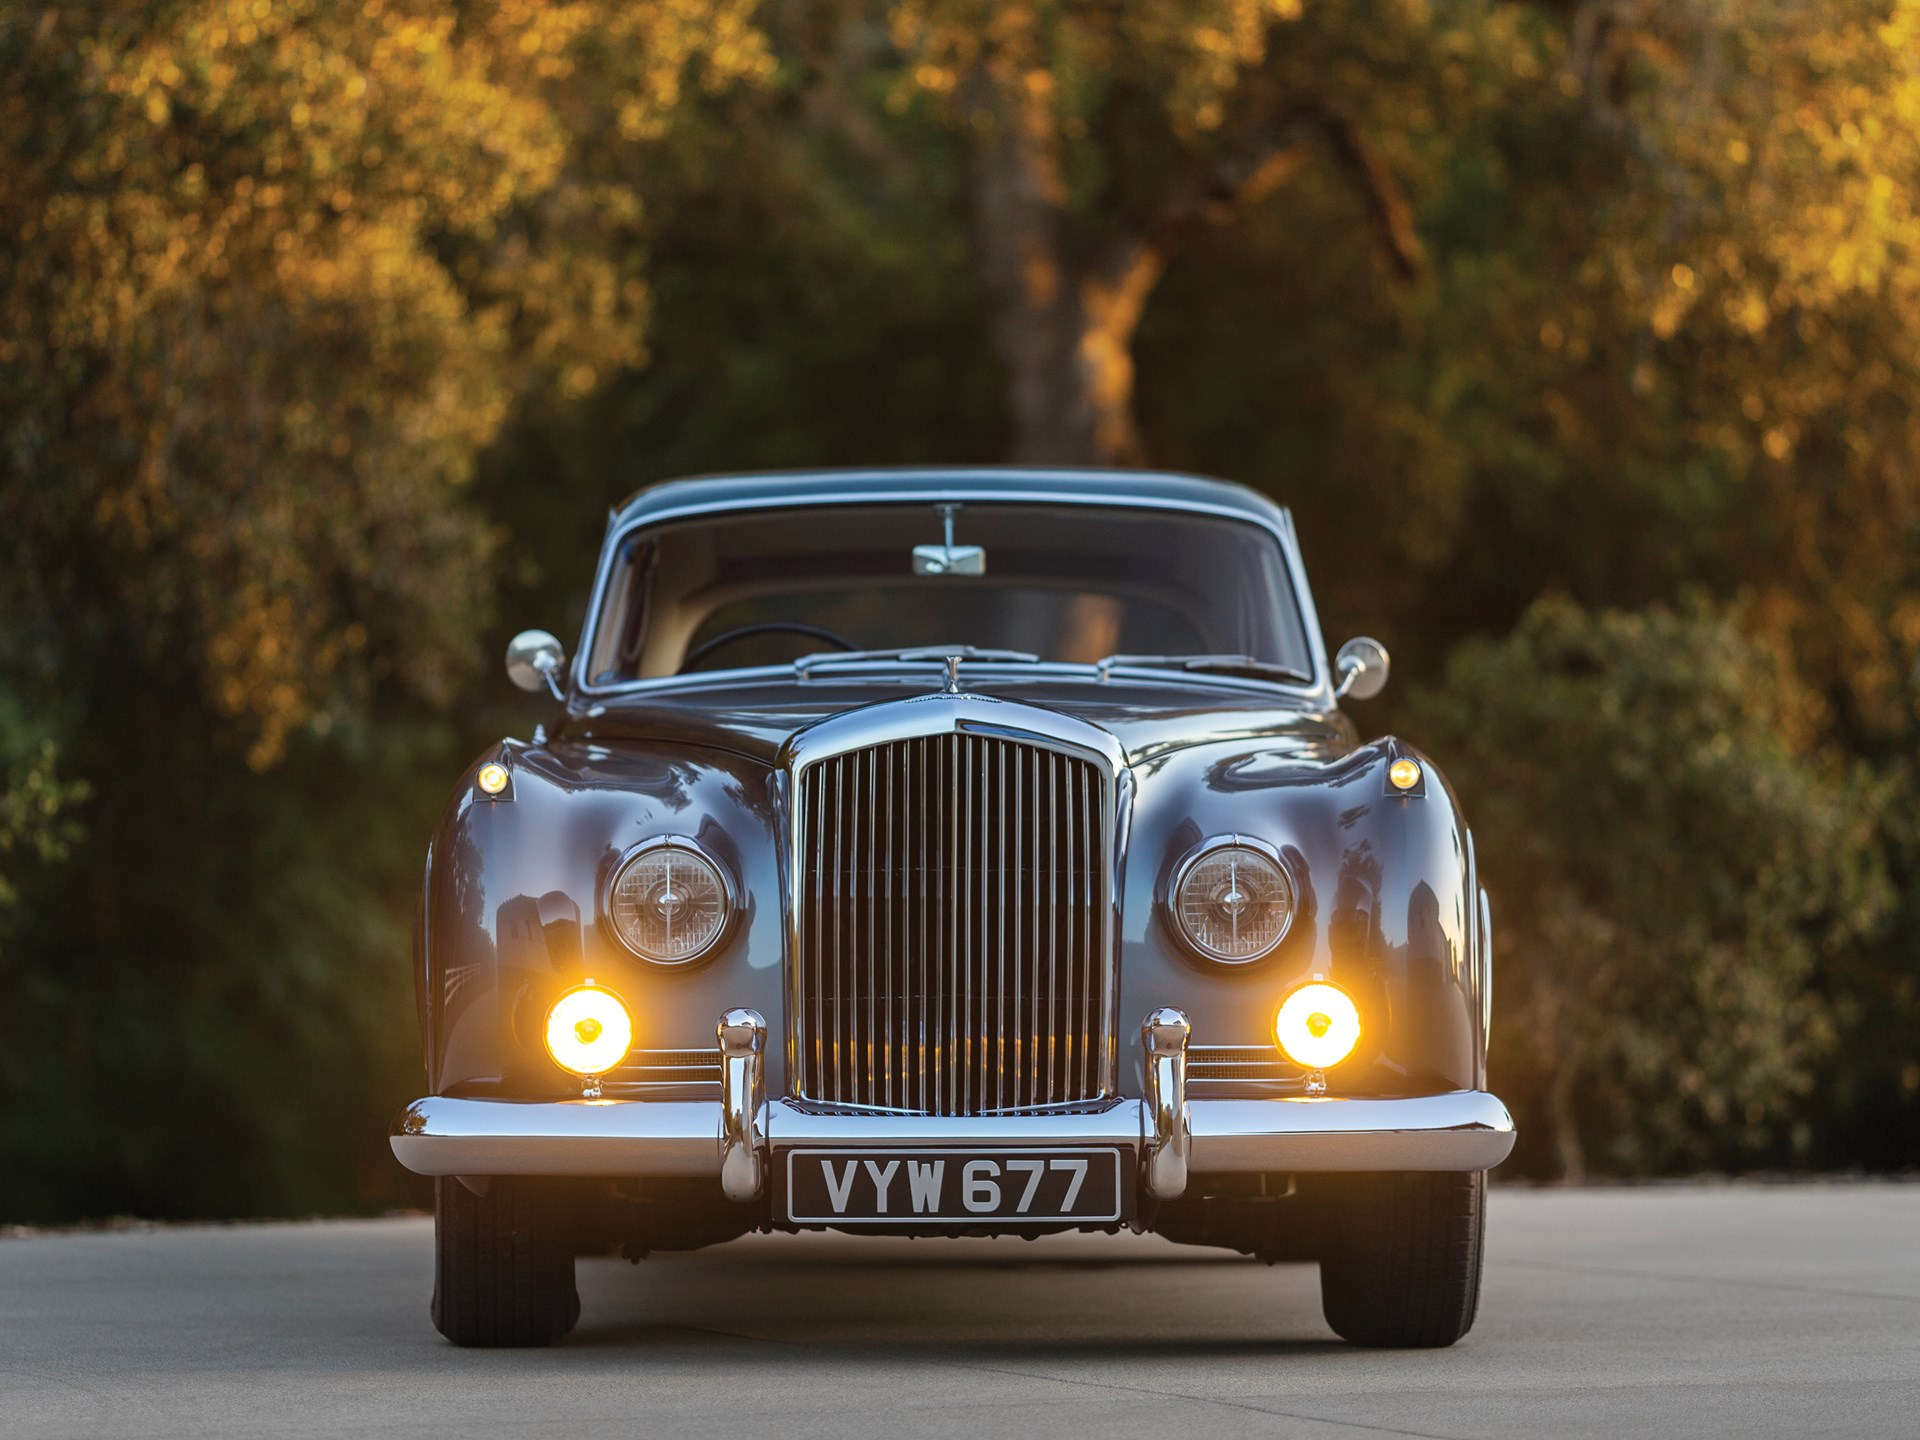 1959 Bentley S1 Continental 'Flying Spur' Sports Saloon by H.J. Mulliner